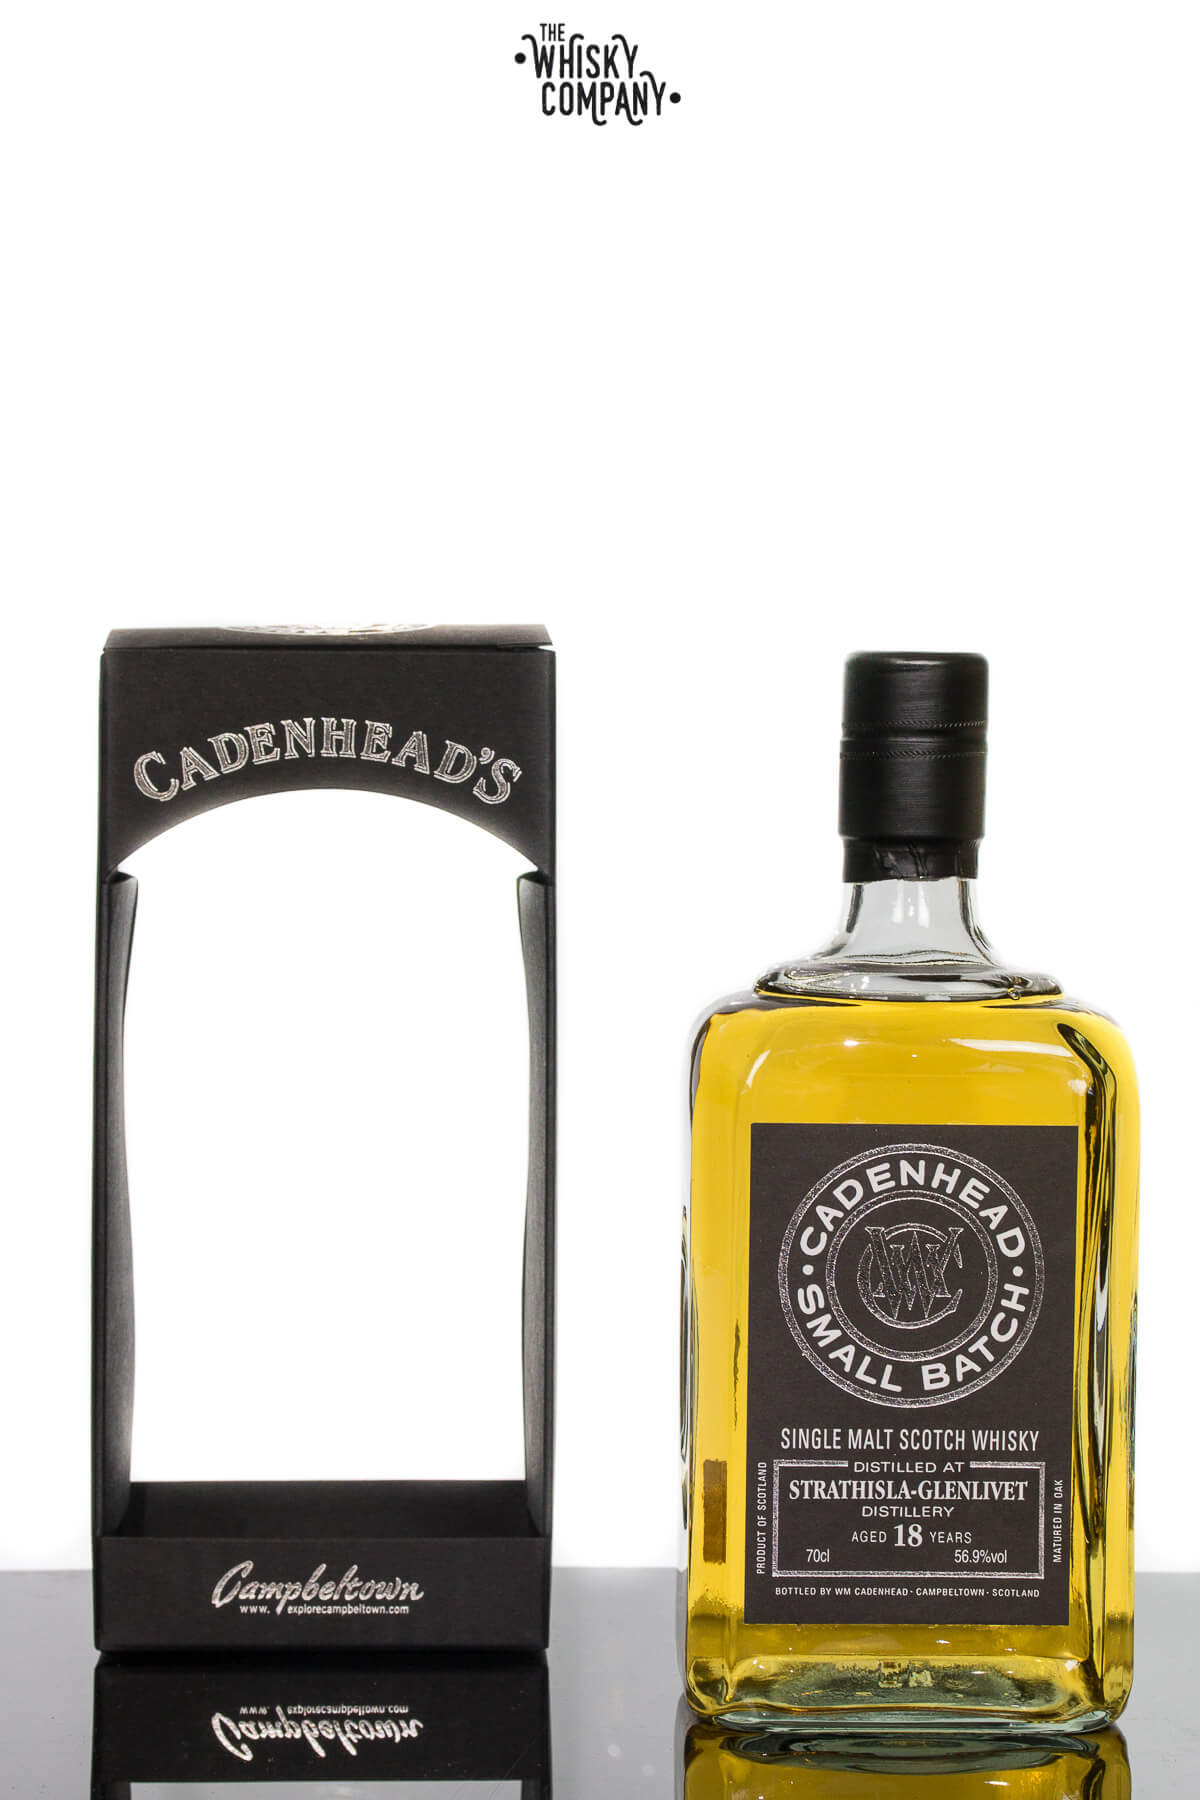 Cadenhead 1997 Strathisla-Glenlivet Aged 18 Years Single Malt Scotch Whisky 700ml